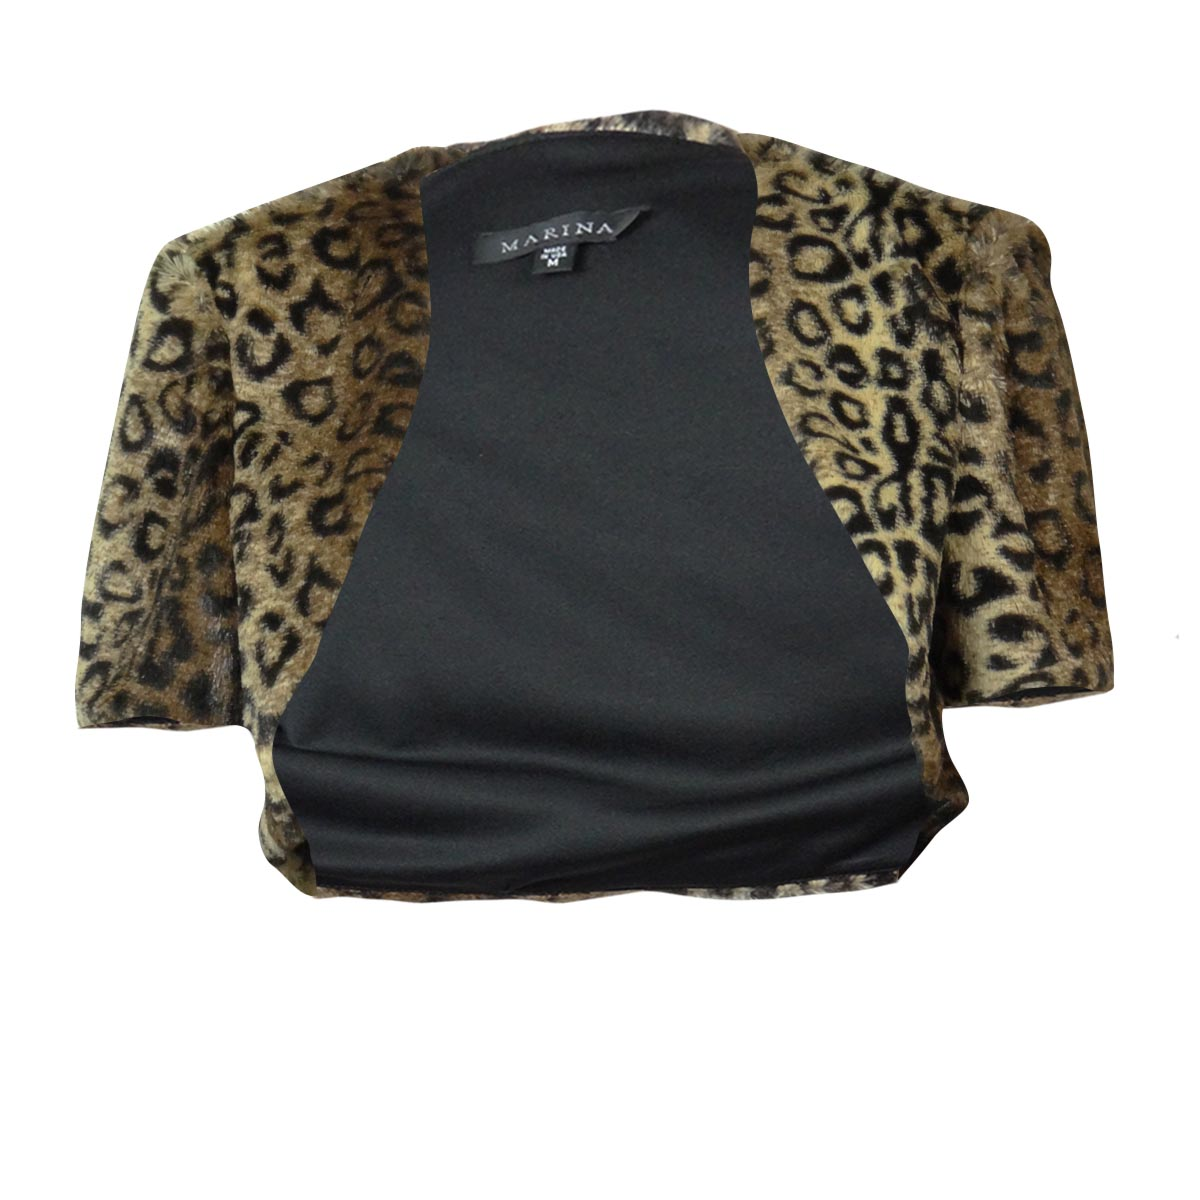 Marina Women's Cap Sleeve Animal Print Faux Fur Bolero Jacket